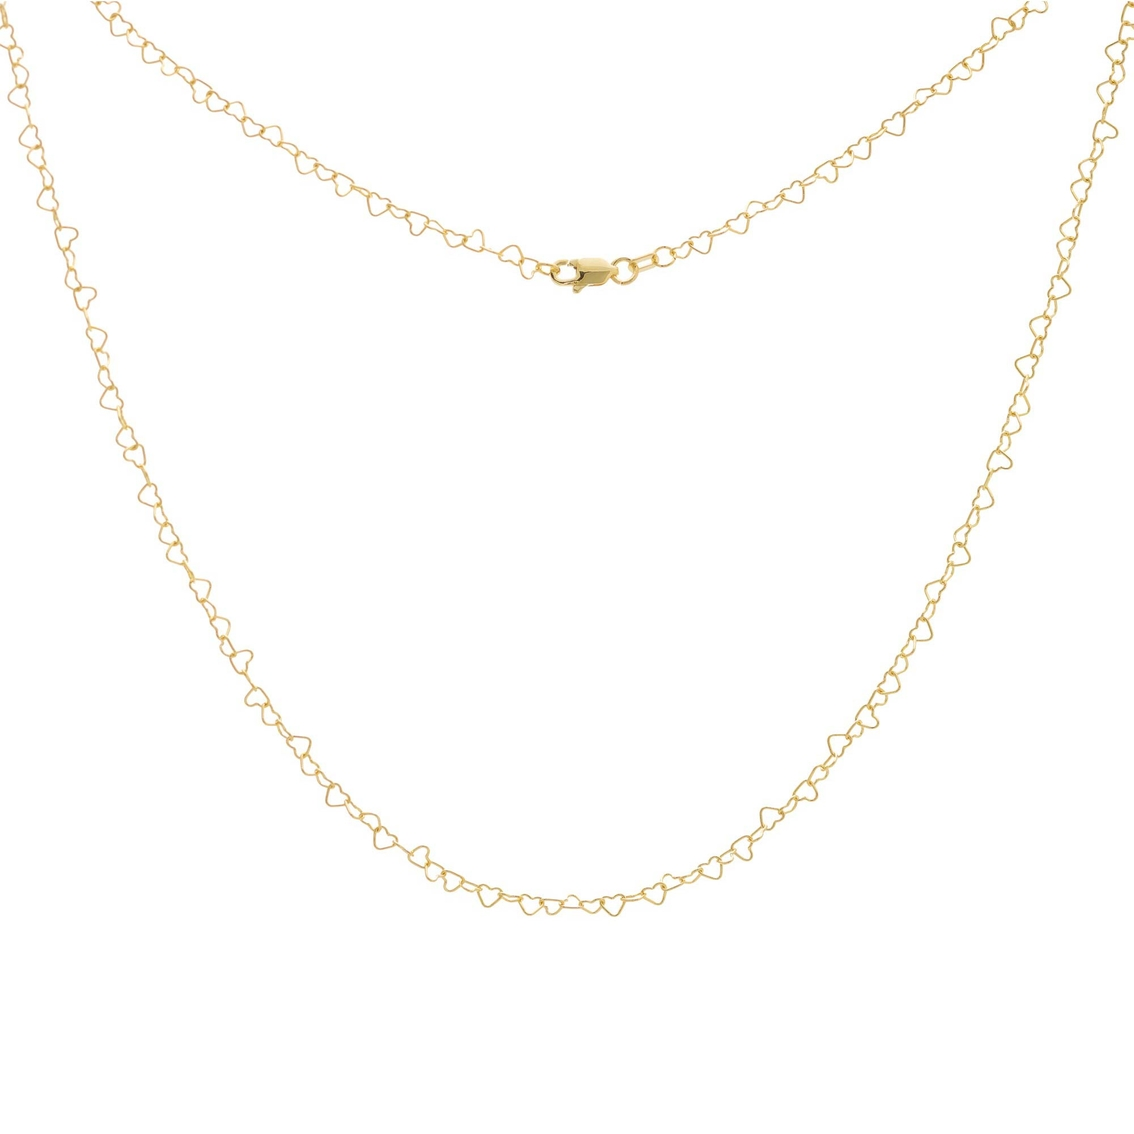 14K Yellow Gold Love Chain Necklace